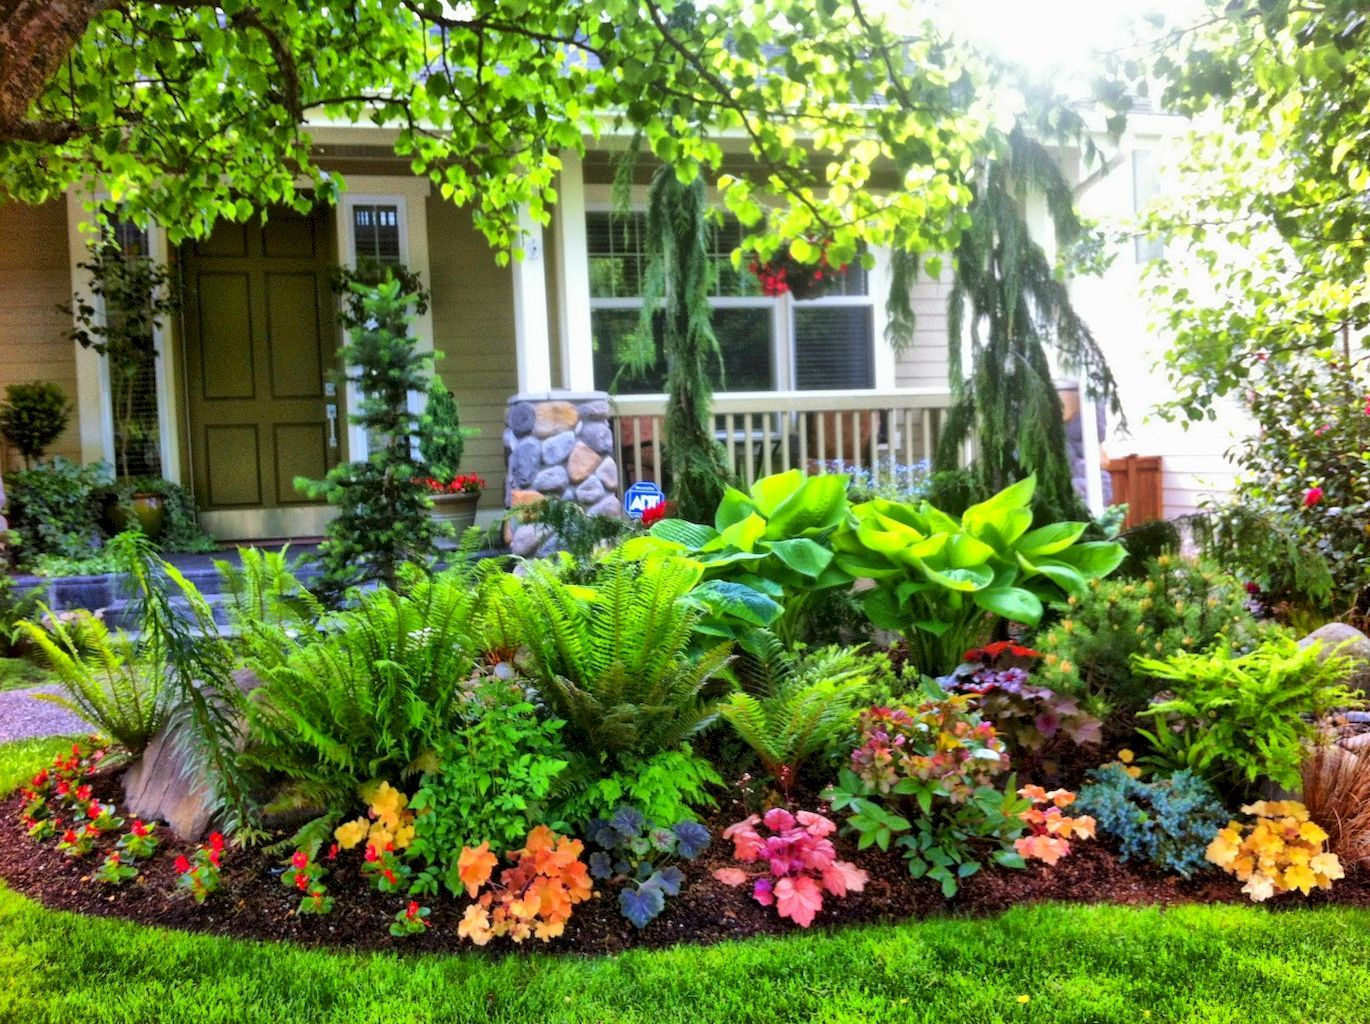 Awesome 45 Fresh and Beautiful Front Yard Landscaping Ideas on A Budget  livinking.com-.